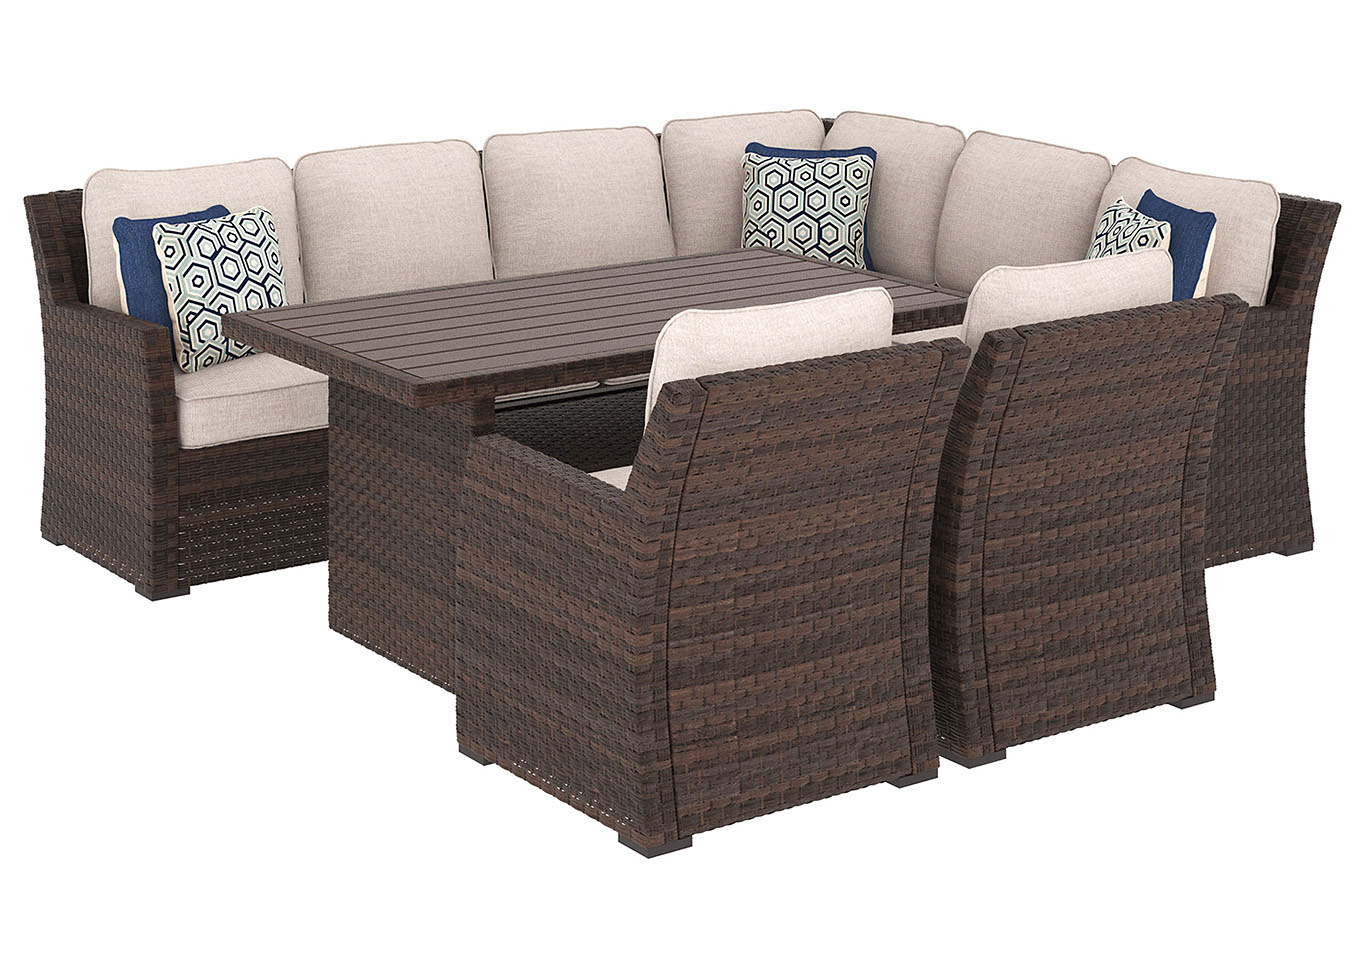 Salceda Beige/Brown Rectangular Dining Table w/Sofa Sectional & 2 Lounge Chair Cushion,Outdoor By Ashley